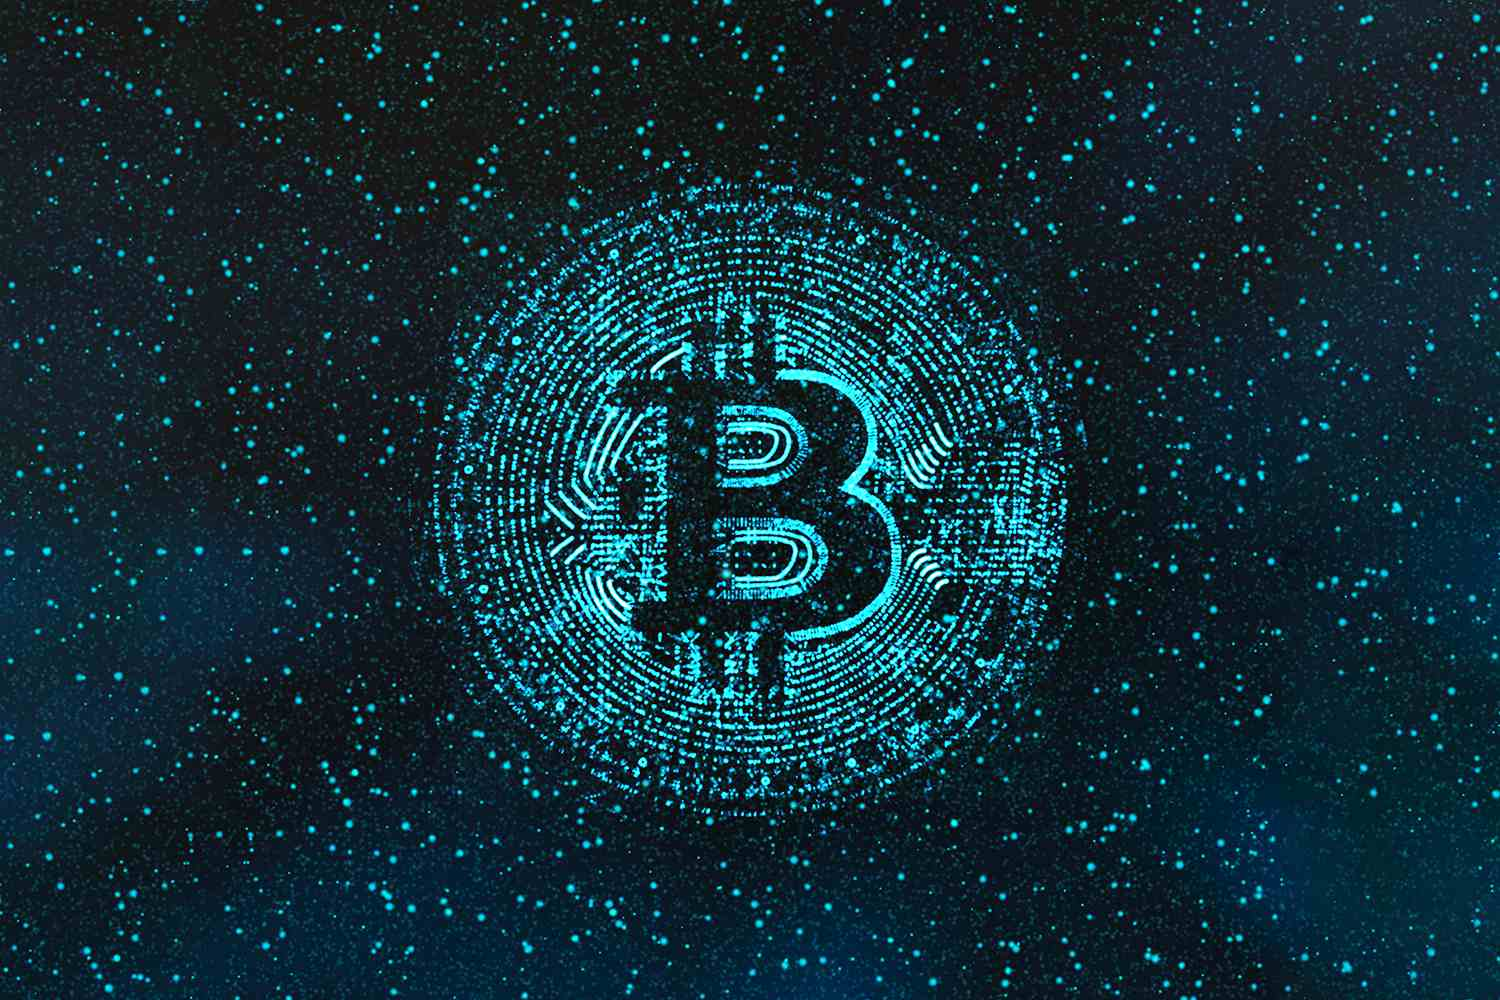 other than cryptocyrrencies has blockchain any other applications